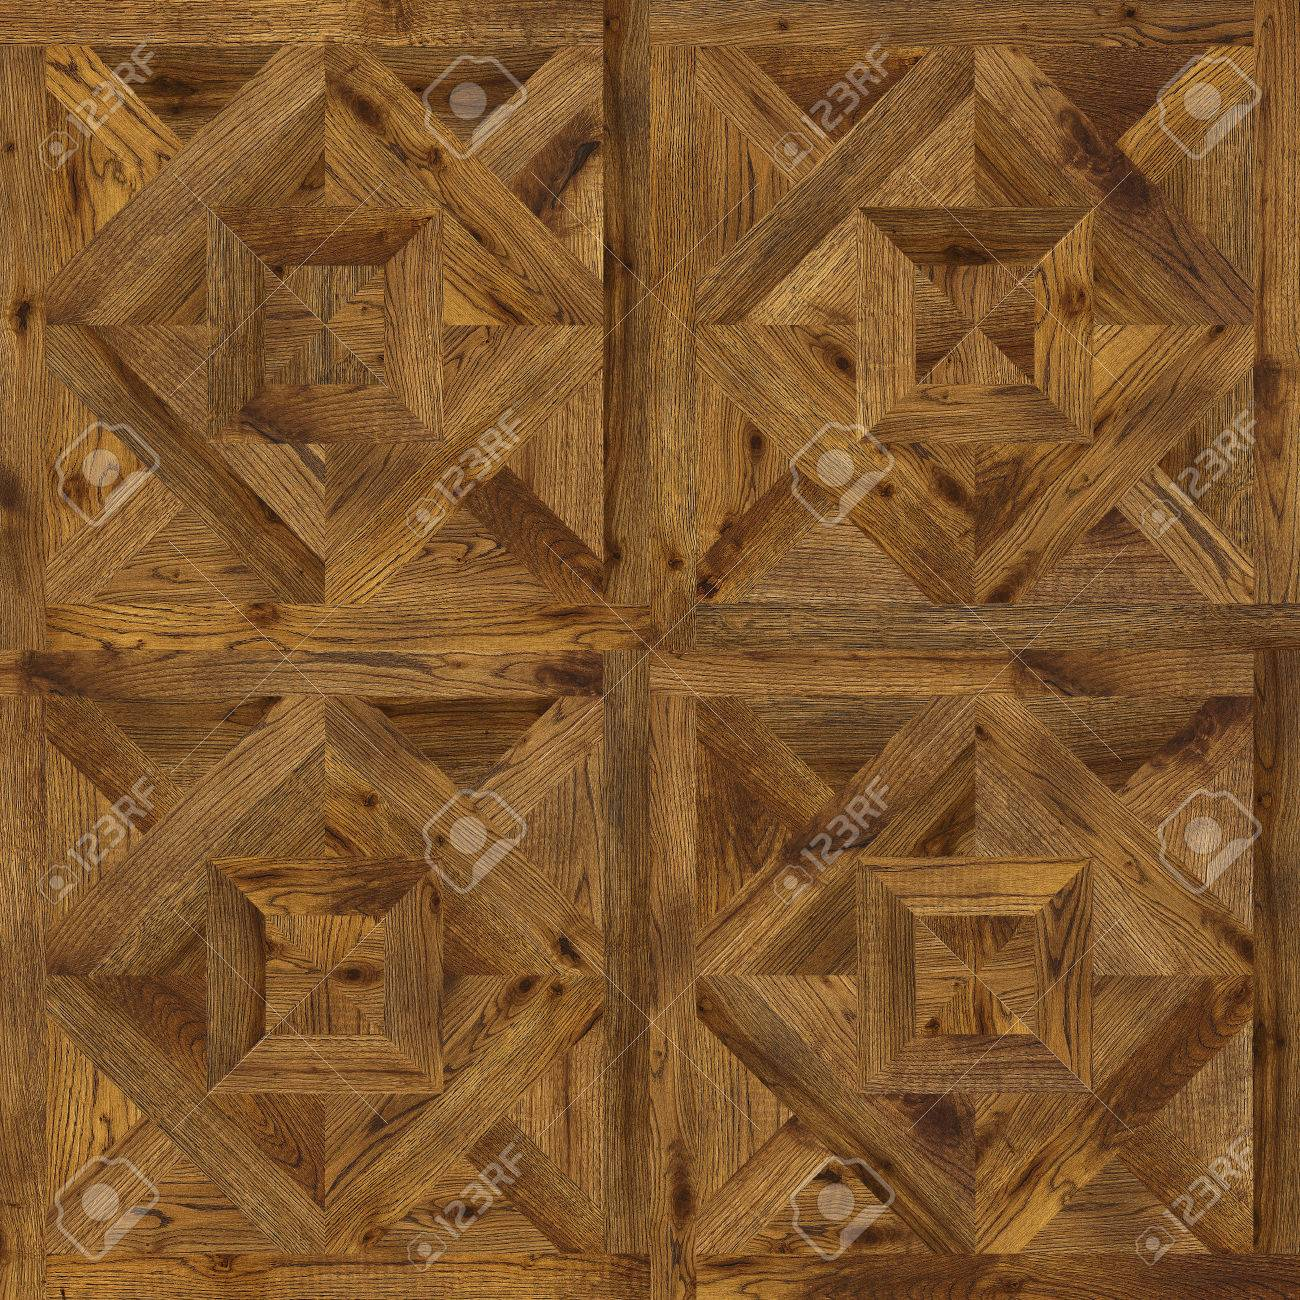 Natural Wooden Background Grunge Parquet Flooring Design Seamless Texture For 3d Interior Stock Photo